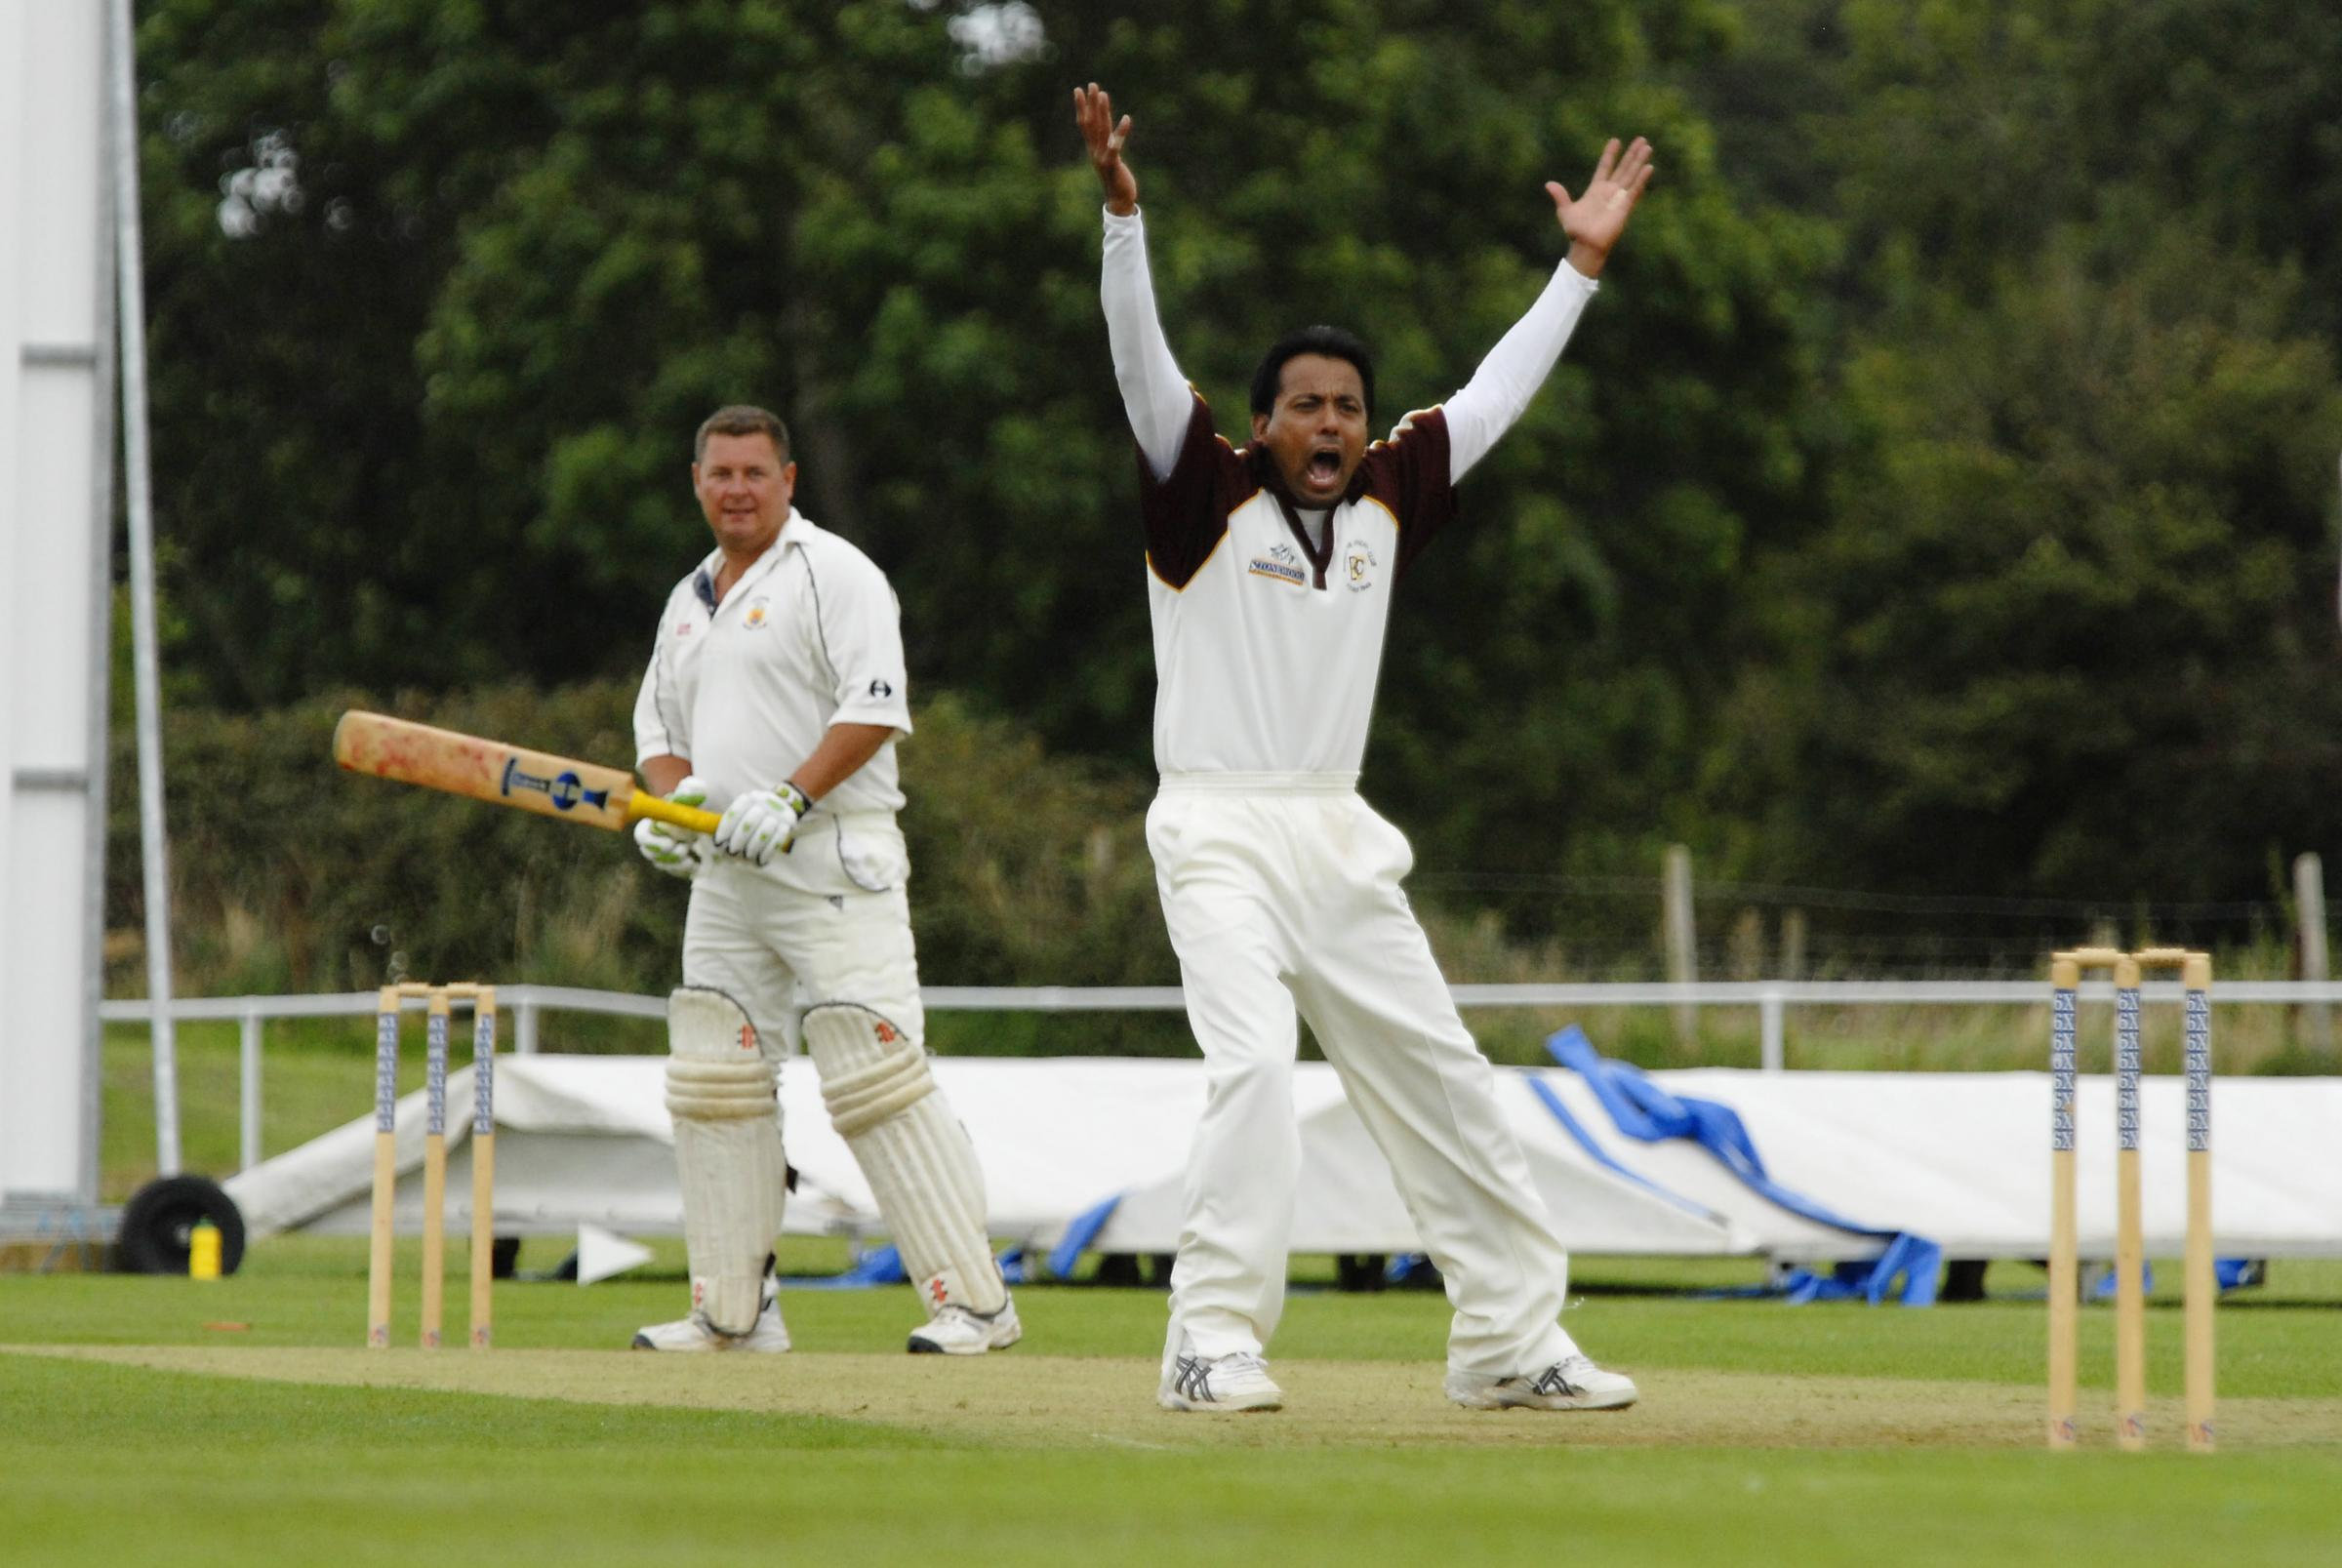 Four wickets from Naeem Khan (right) weren't enough to prevent Biddestone slipped to defeat at Warminster